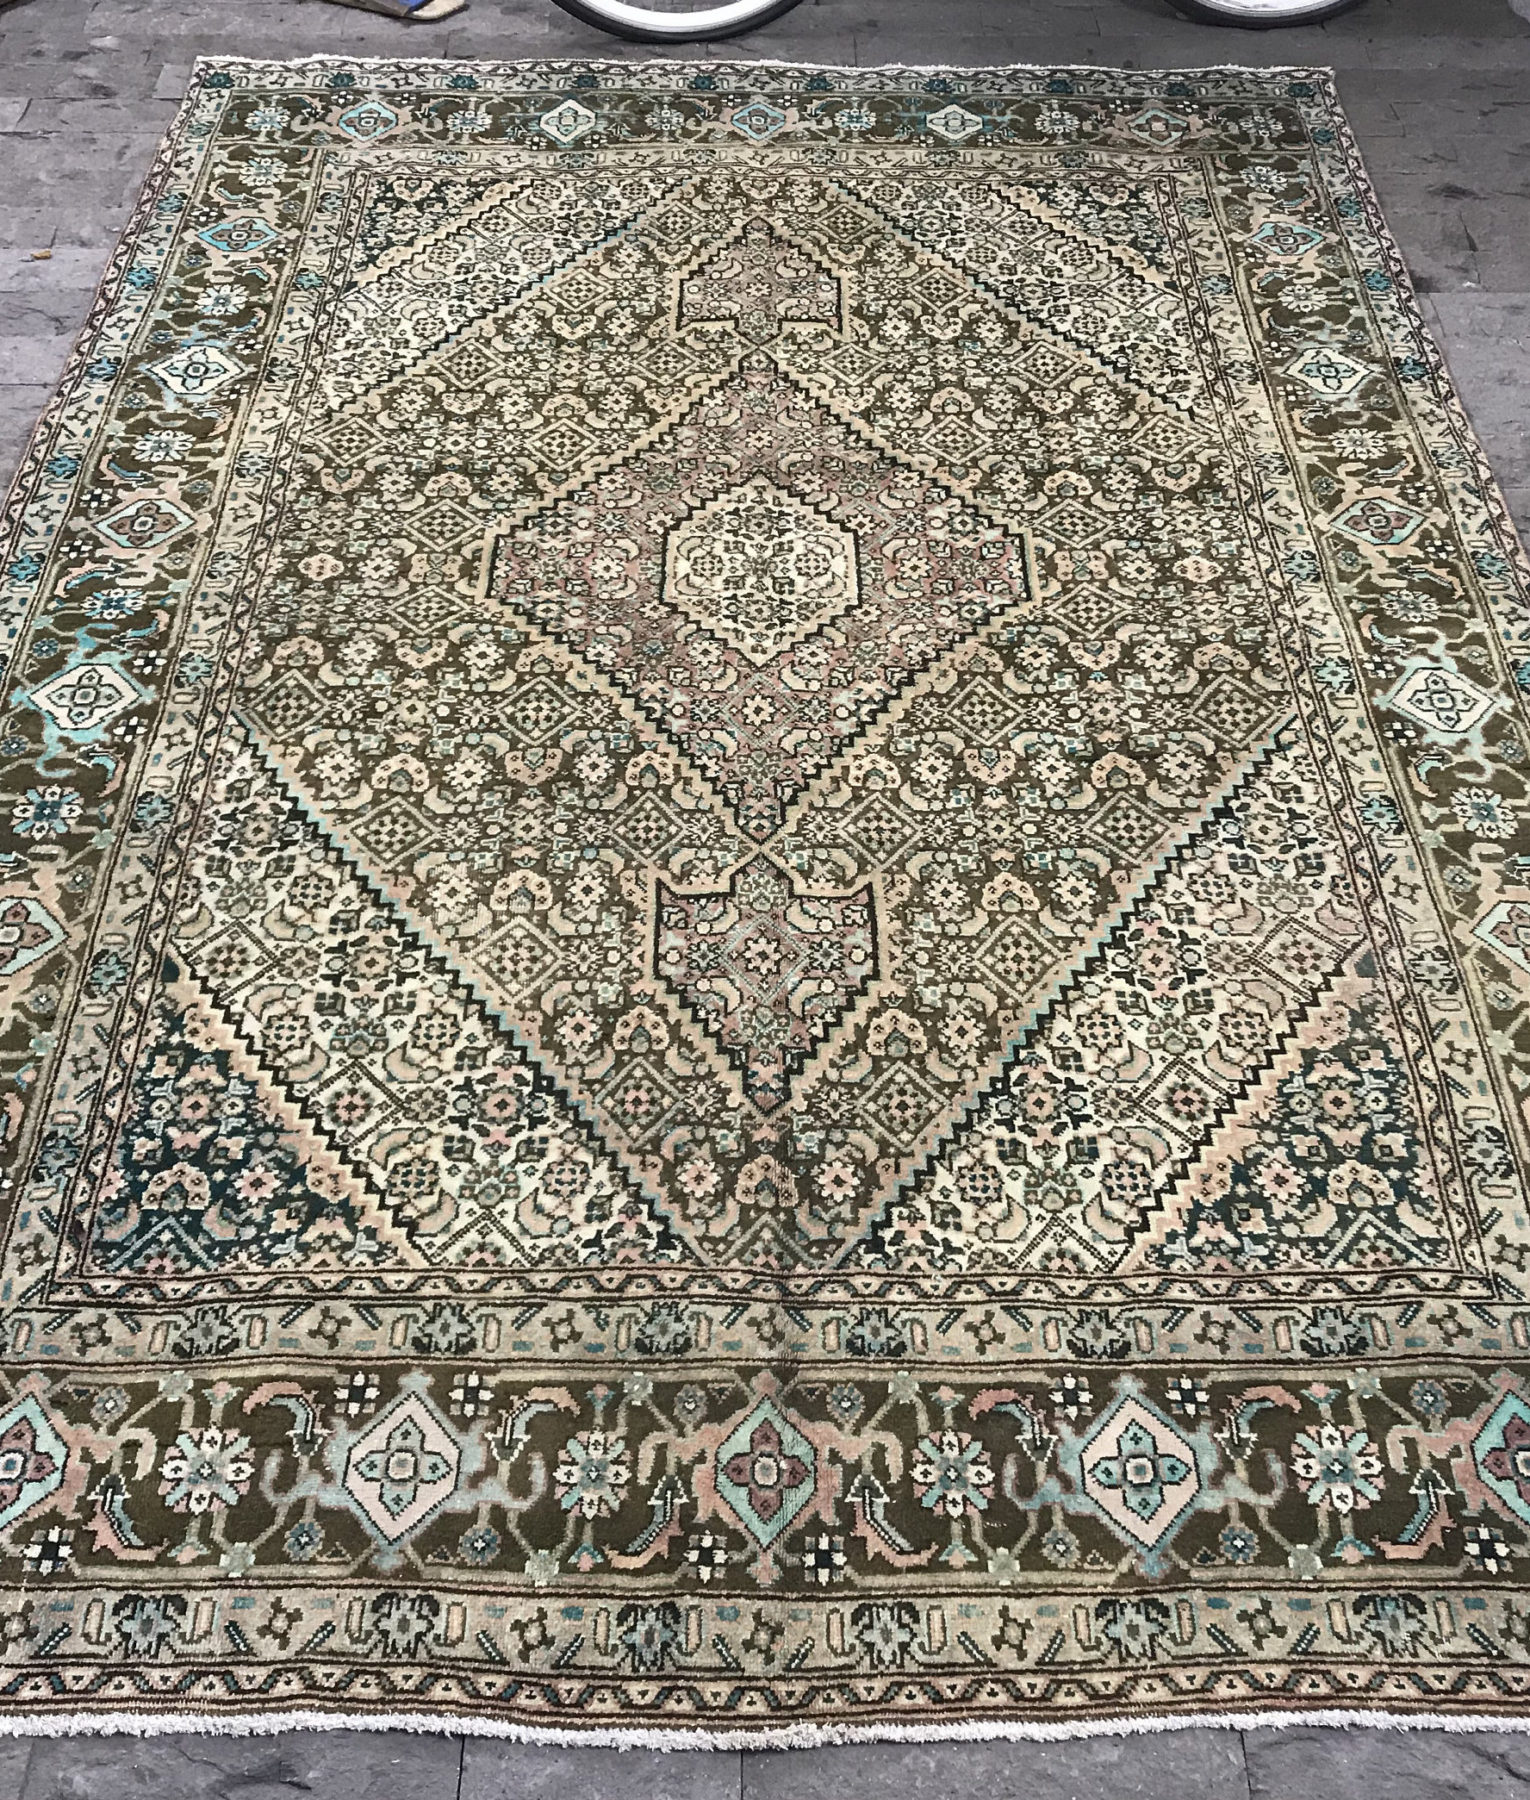 Large Persian Rug 6 4x9 3ft Vintage Beige Oushak Distressed Afghan Turkish Size Brown Area Overdyed